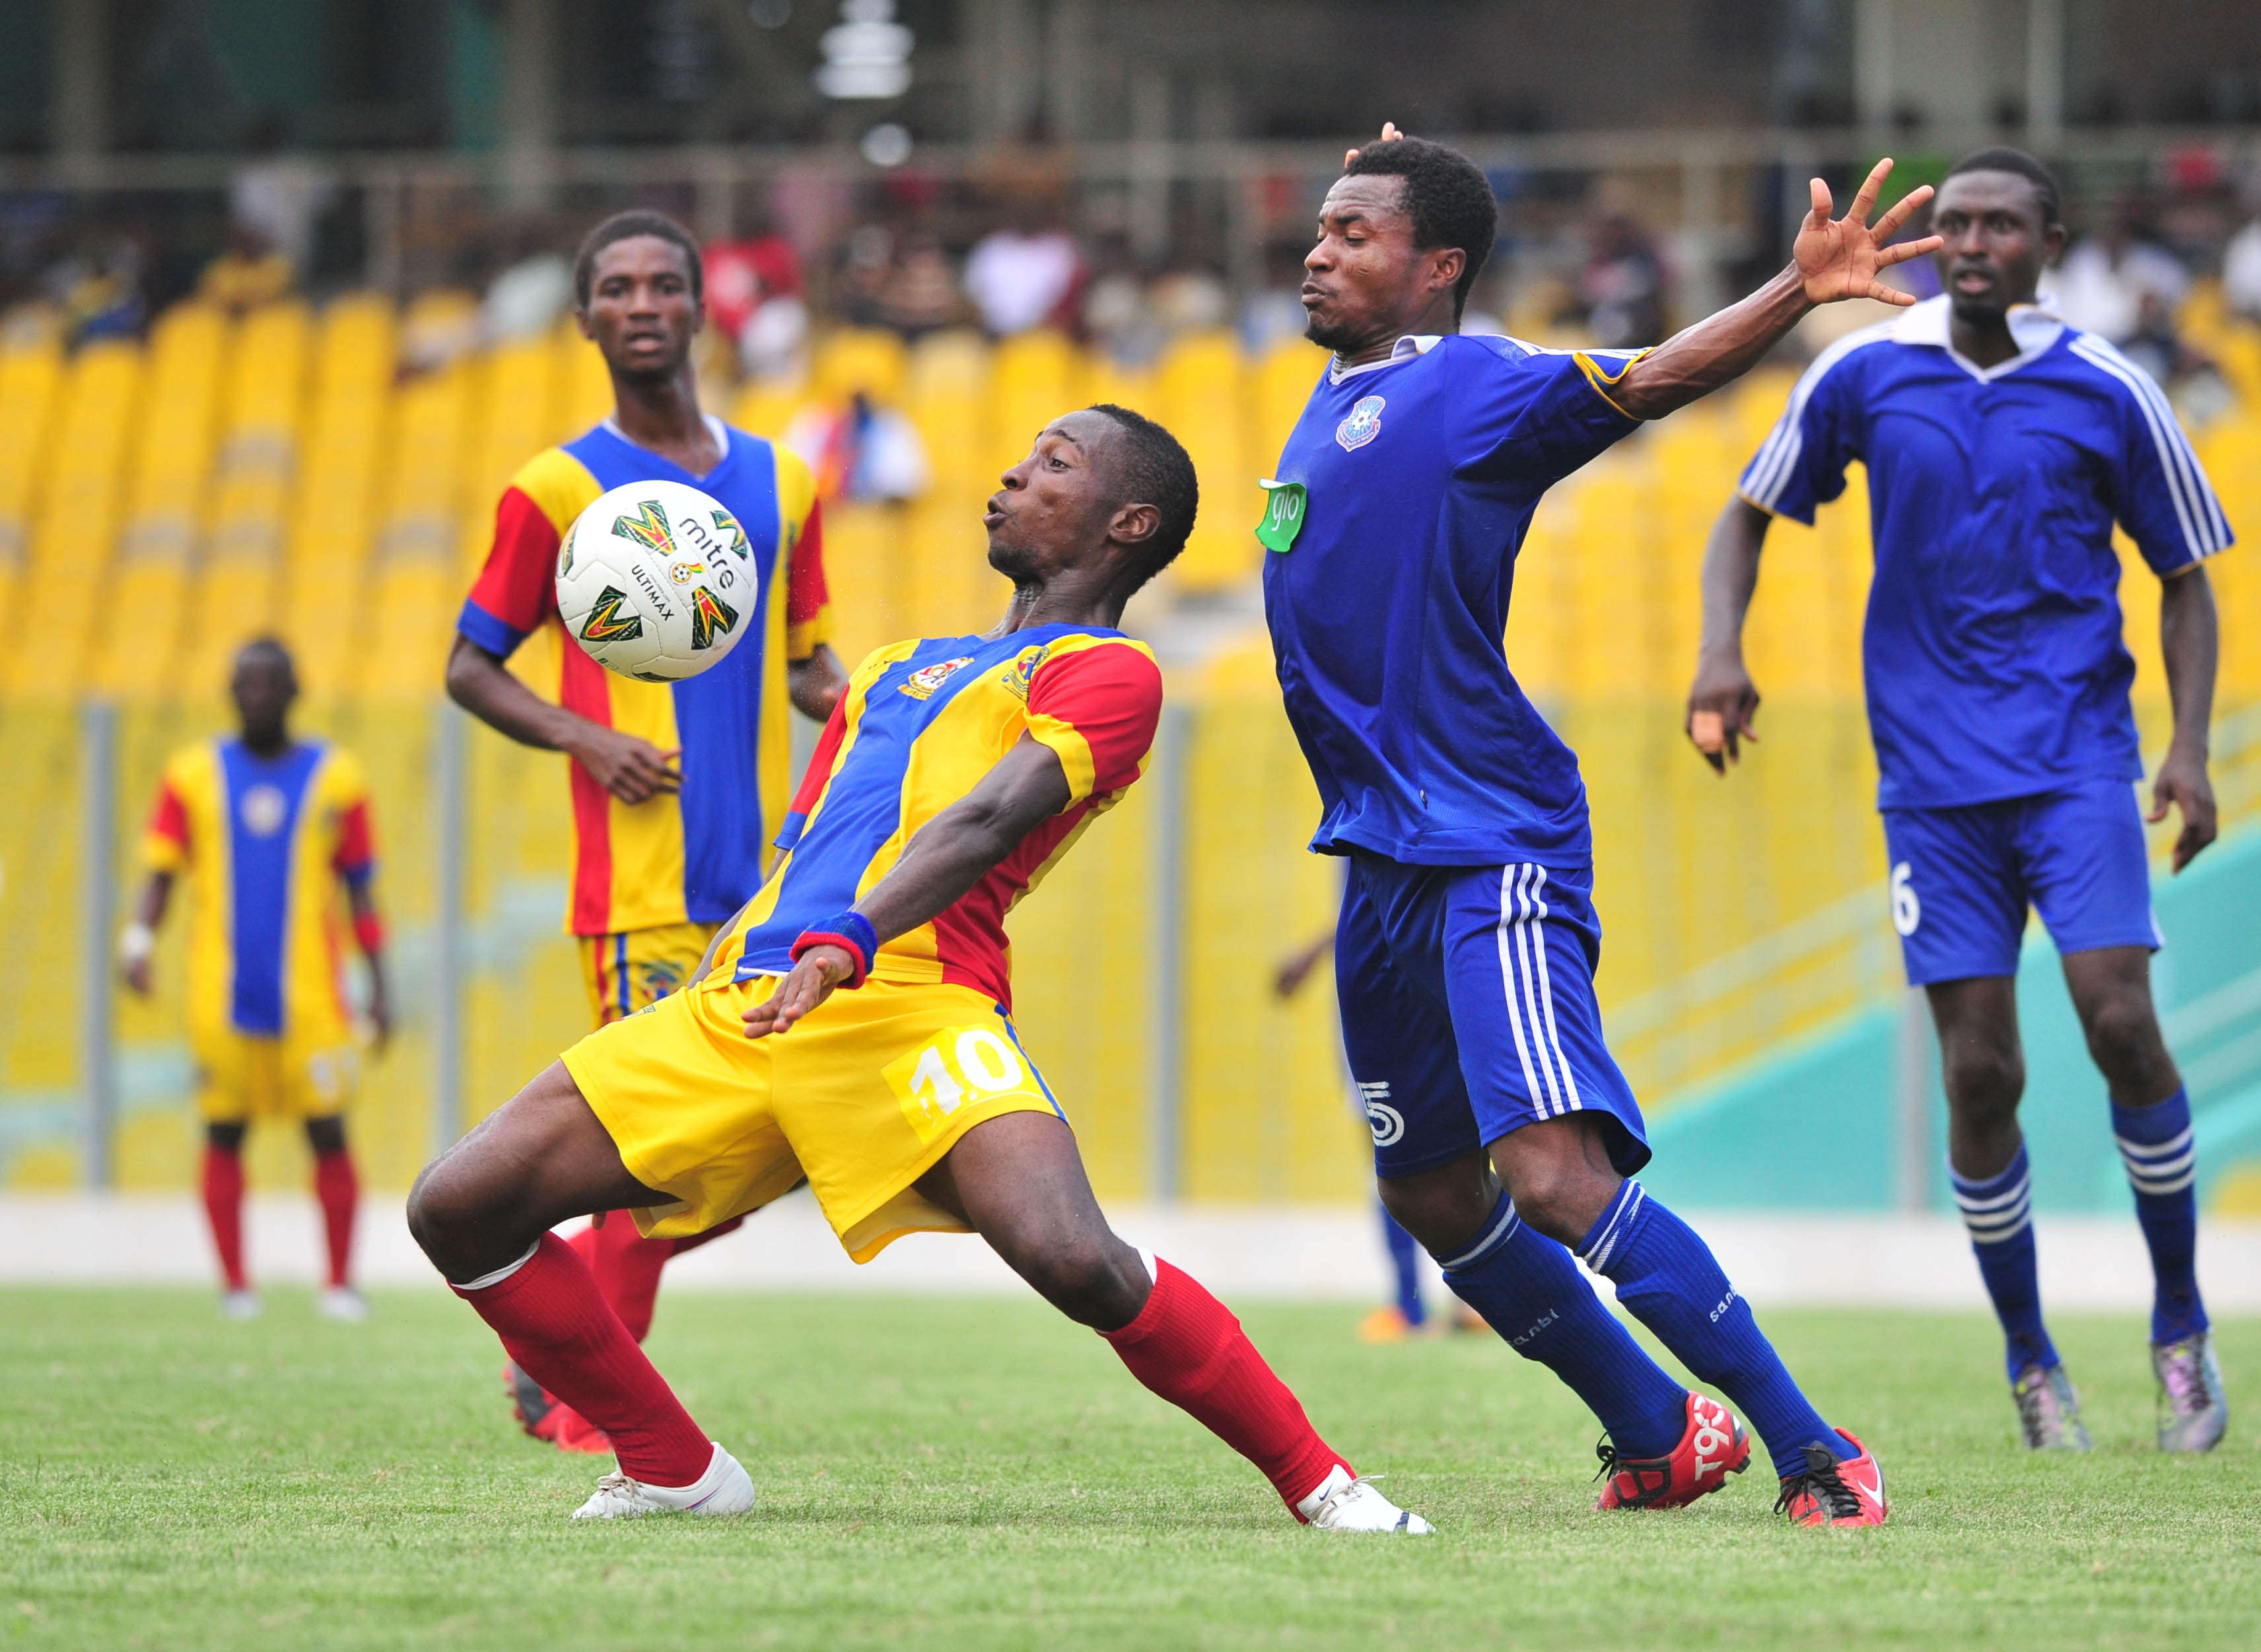 Egyptian giants Al Ahly to scout for talents in Ghana